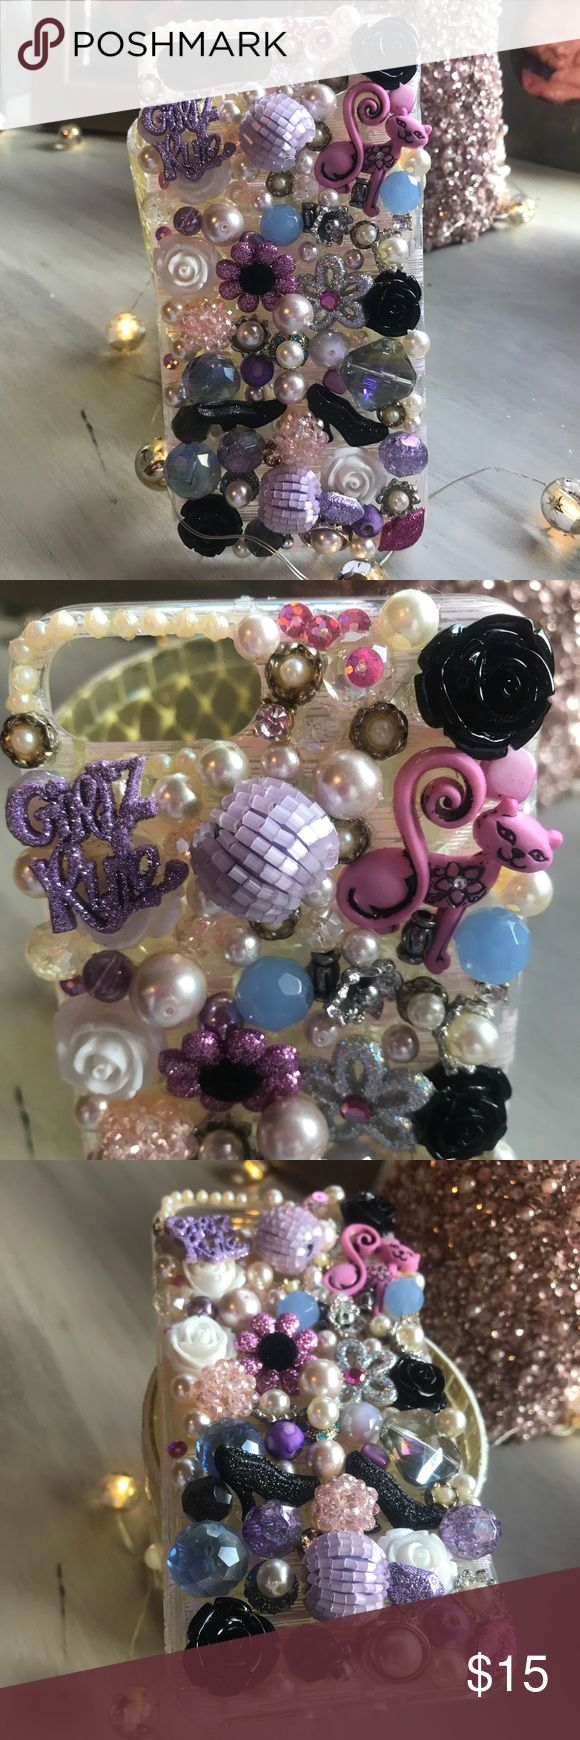 Galaxy 7 S cover Super embellished phone case, fun and definitely a conversation starter! Accessories Phone Cases